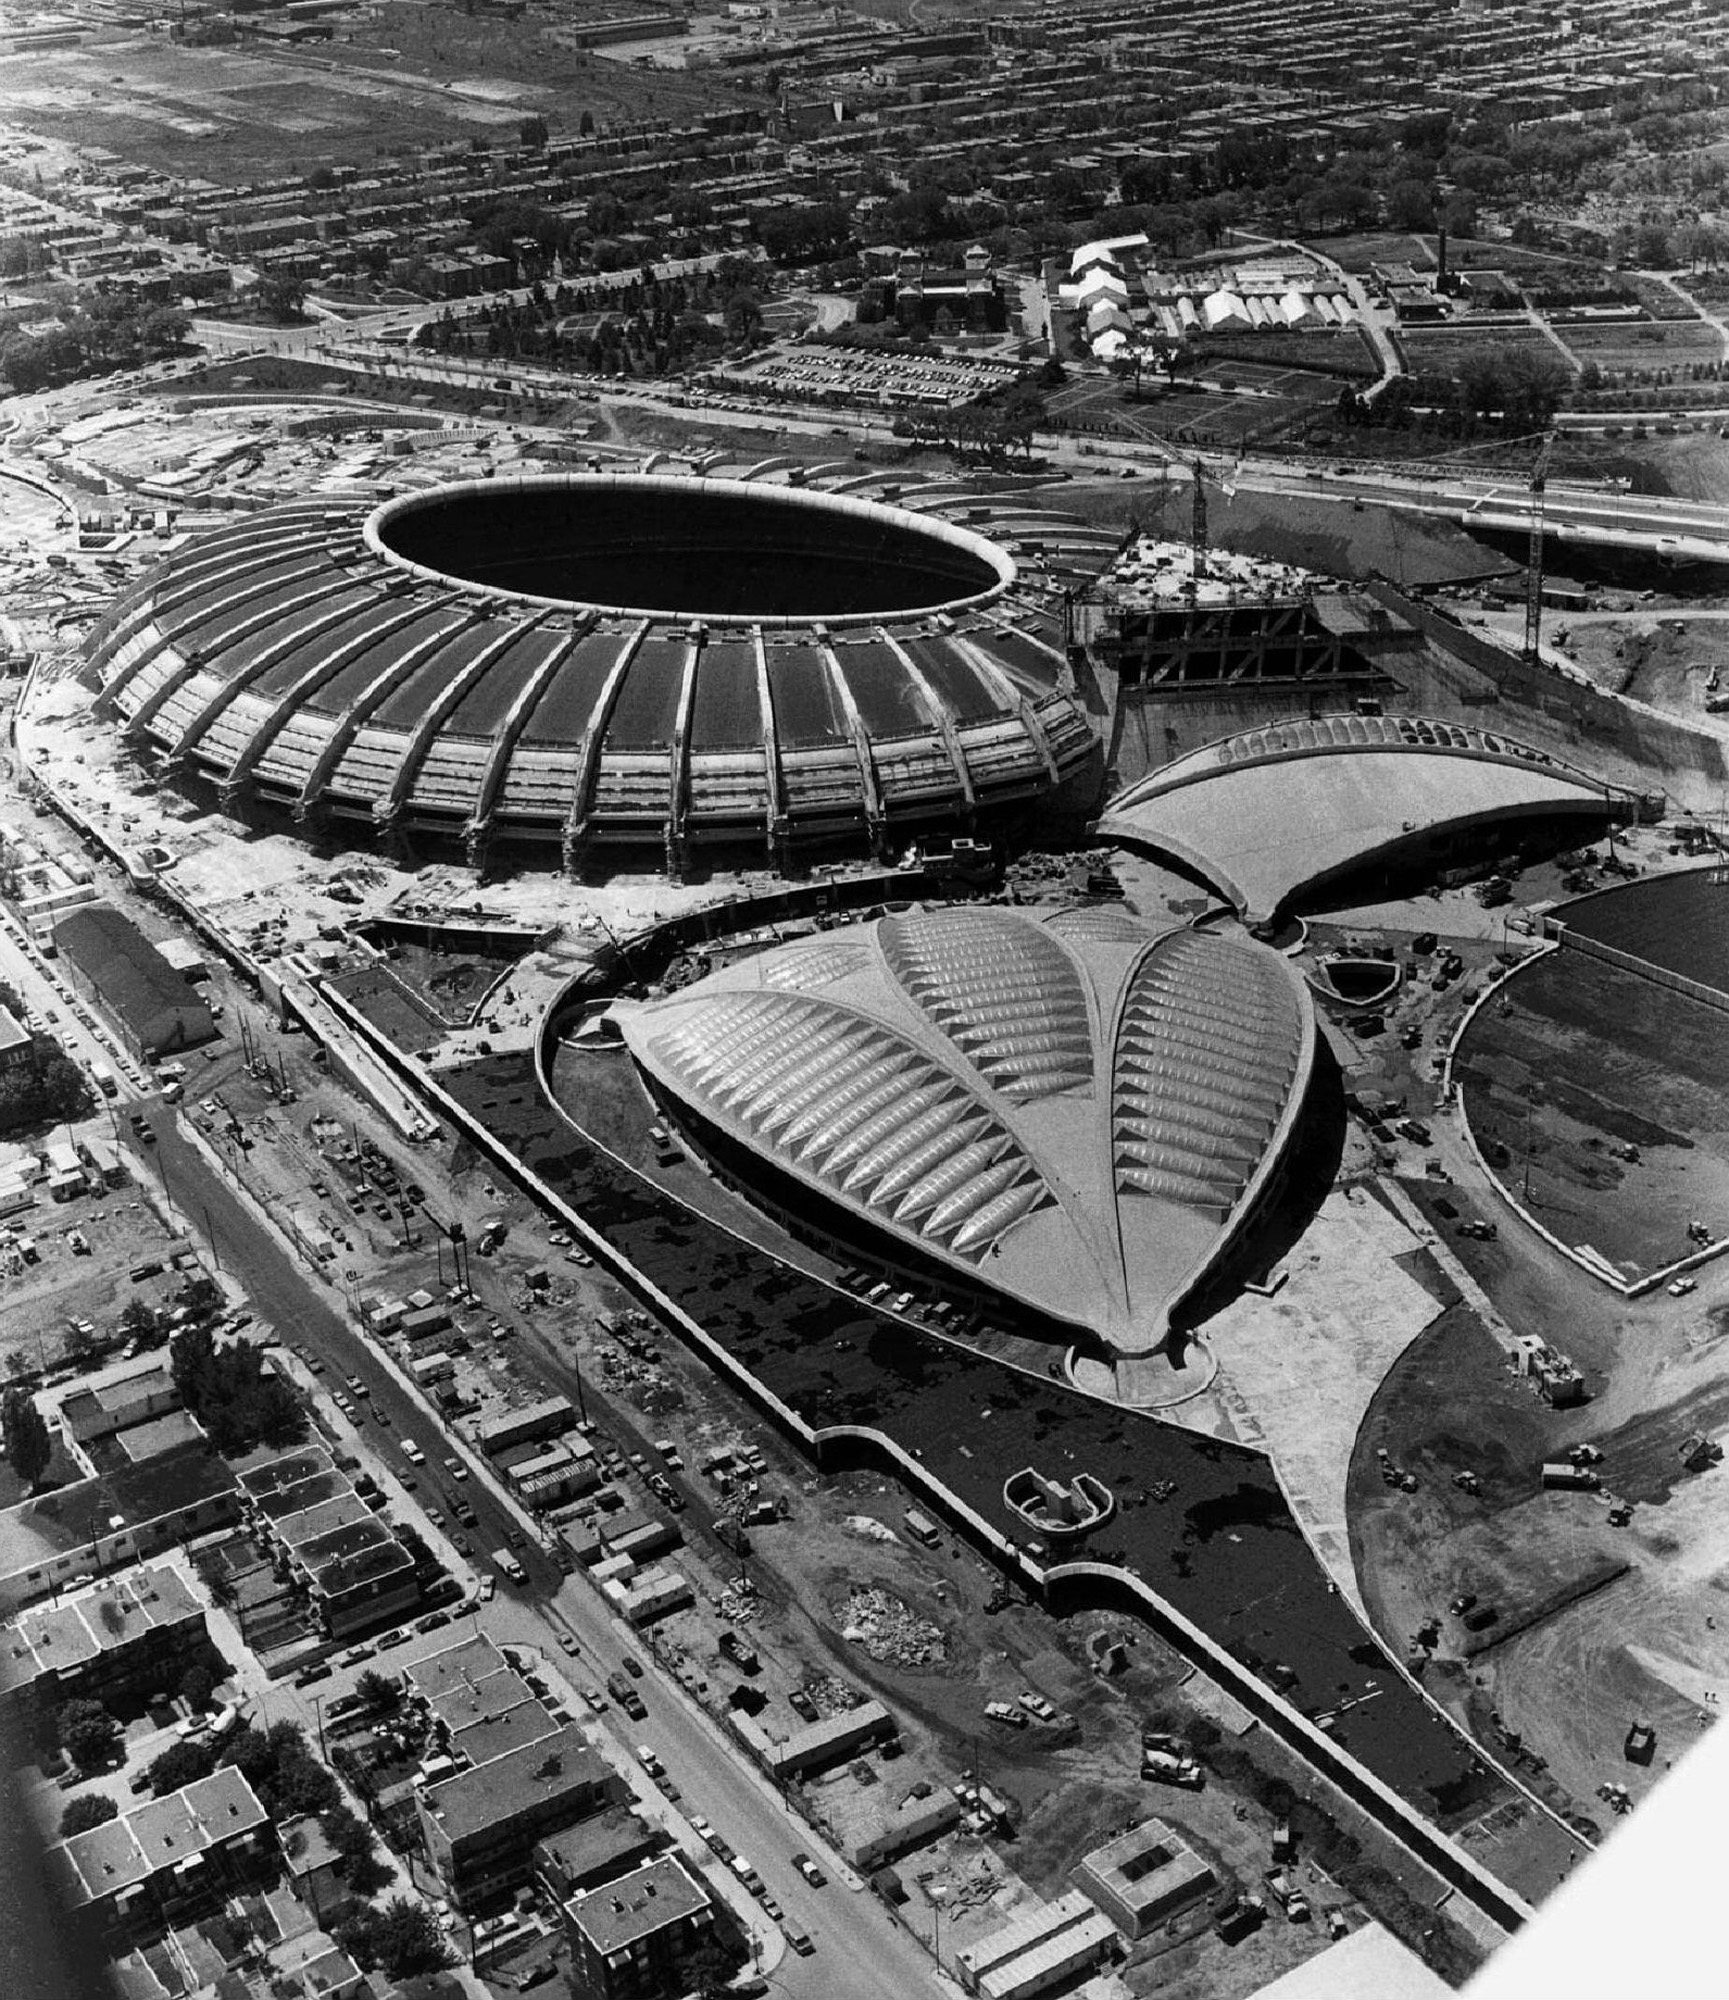 FILE - The Montreal Olympic Stadium and the Olympic Veledrome are shown in this June 1976 photo. It was 30 years ago that the 21st Olympic Games in Montreal opened. They were a huge success despite shocking cost over-runs and construction delays and the fact that there was no gold among the host country's 11 medals. (CP PICTURE ARCHIVE/stf)